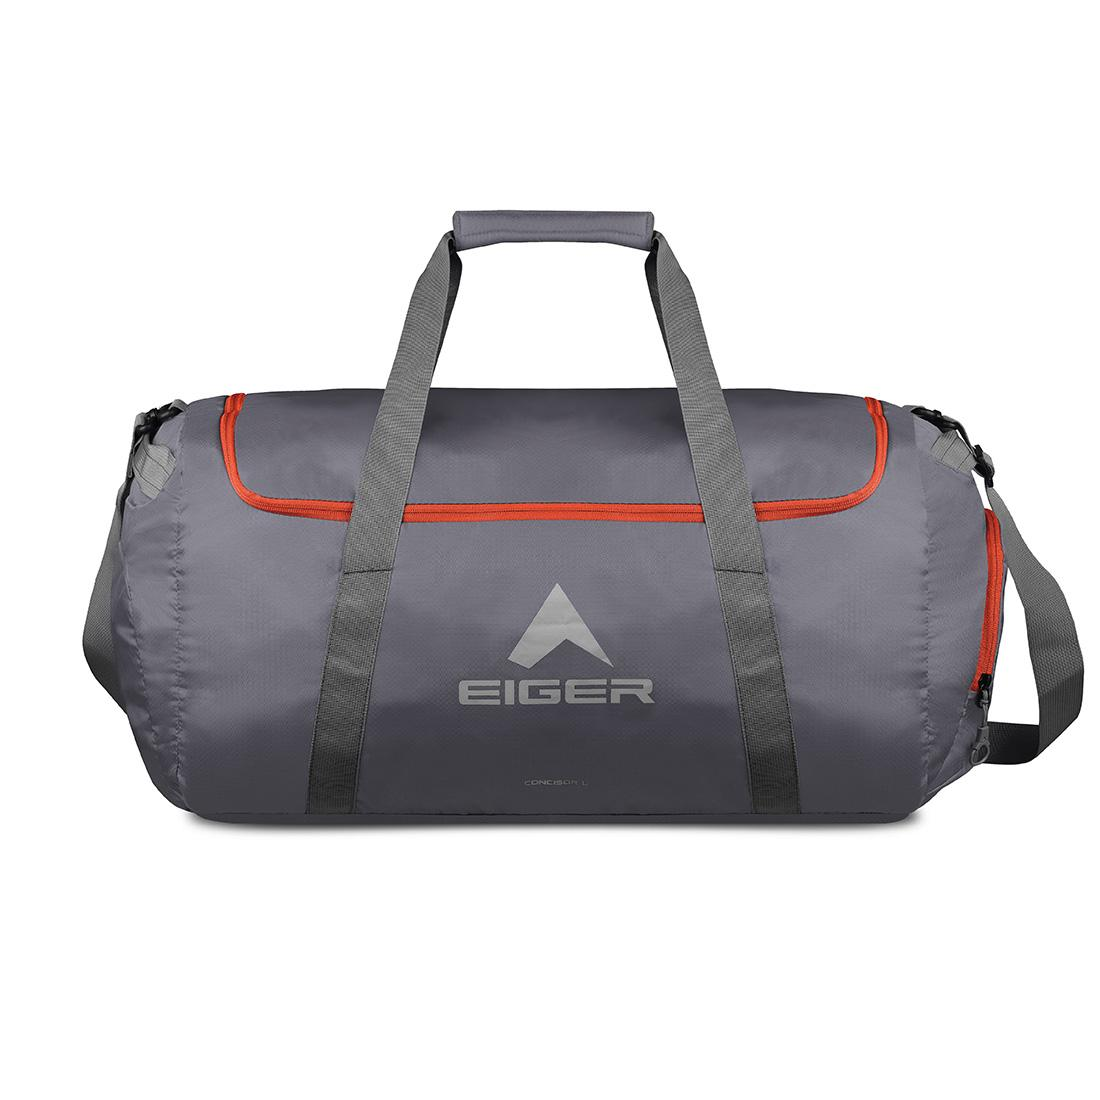 Eiger Concisor Folded Duffle Bag 60L